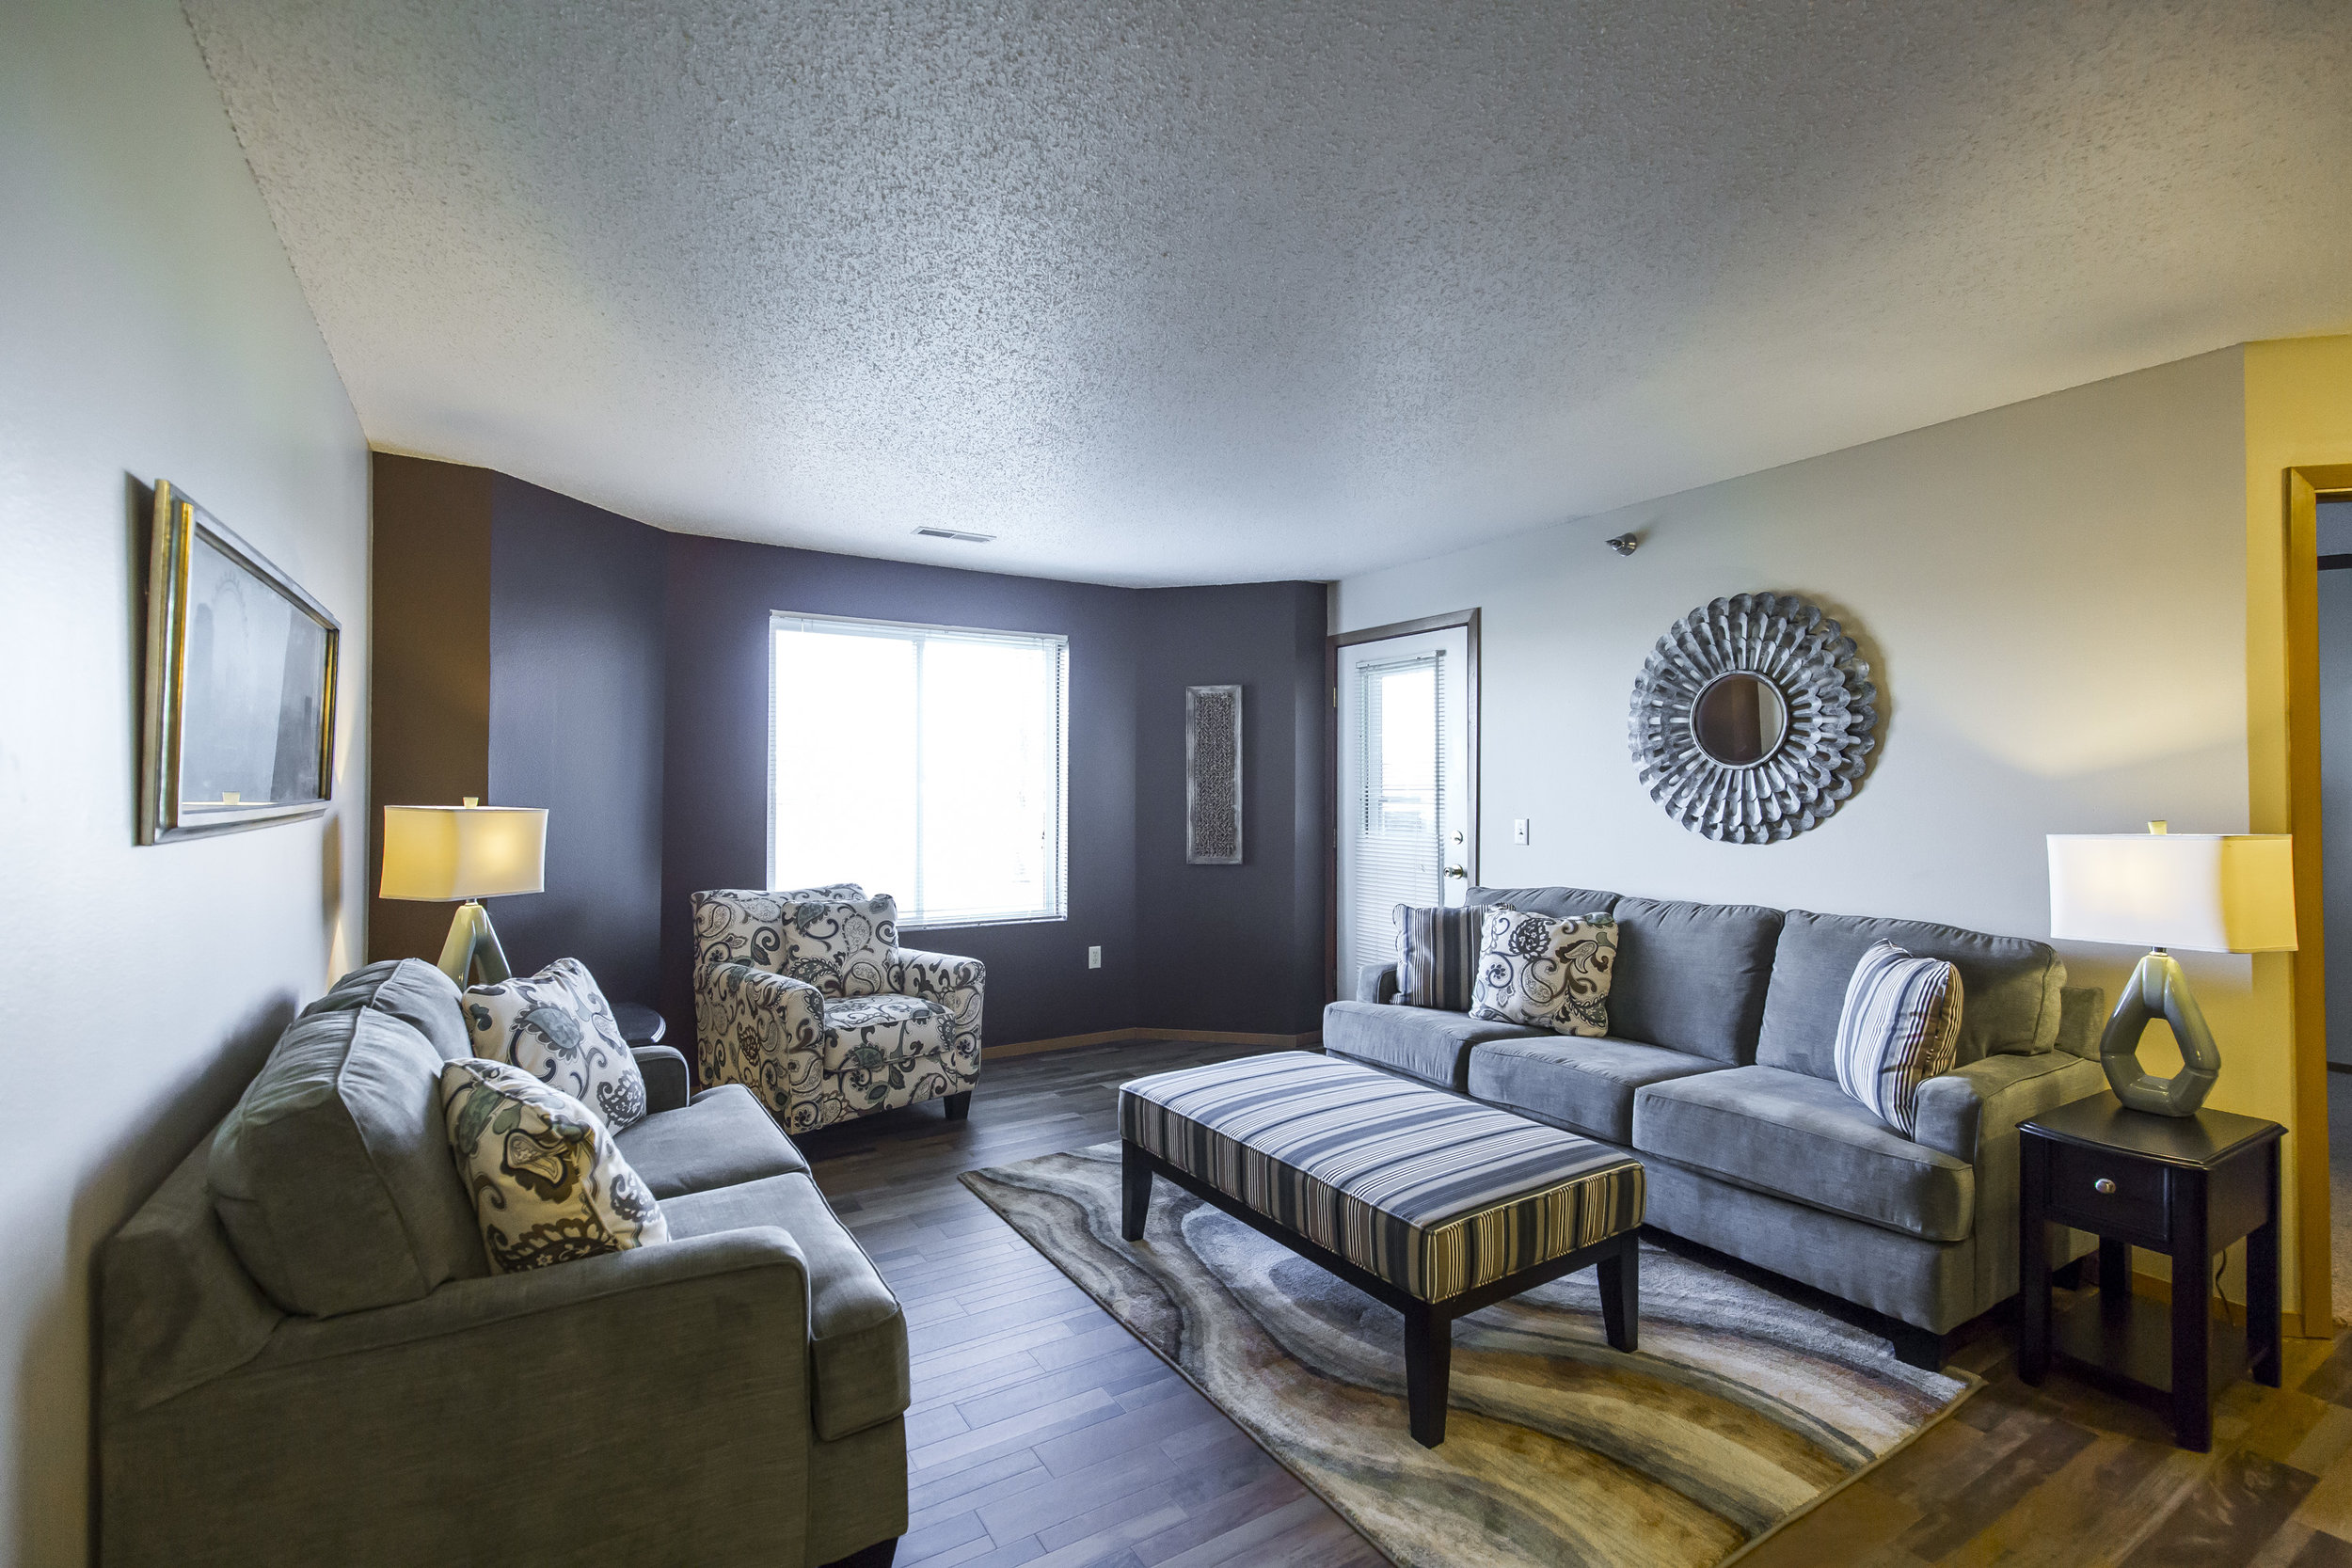 The Living Room Provides Access to the Balcony or Patio